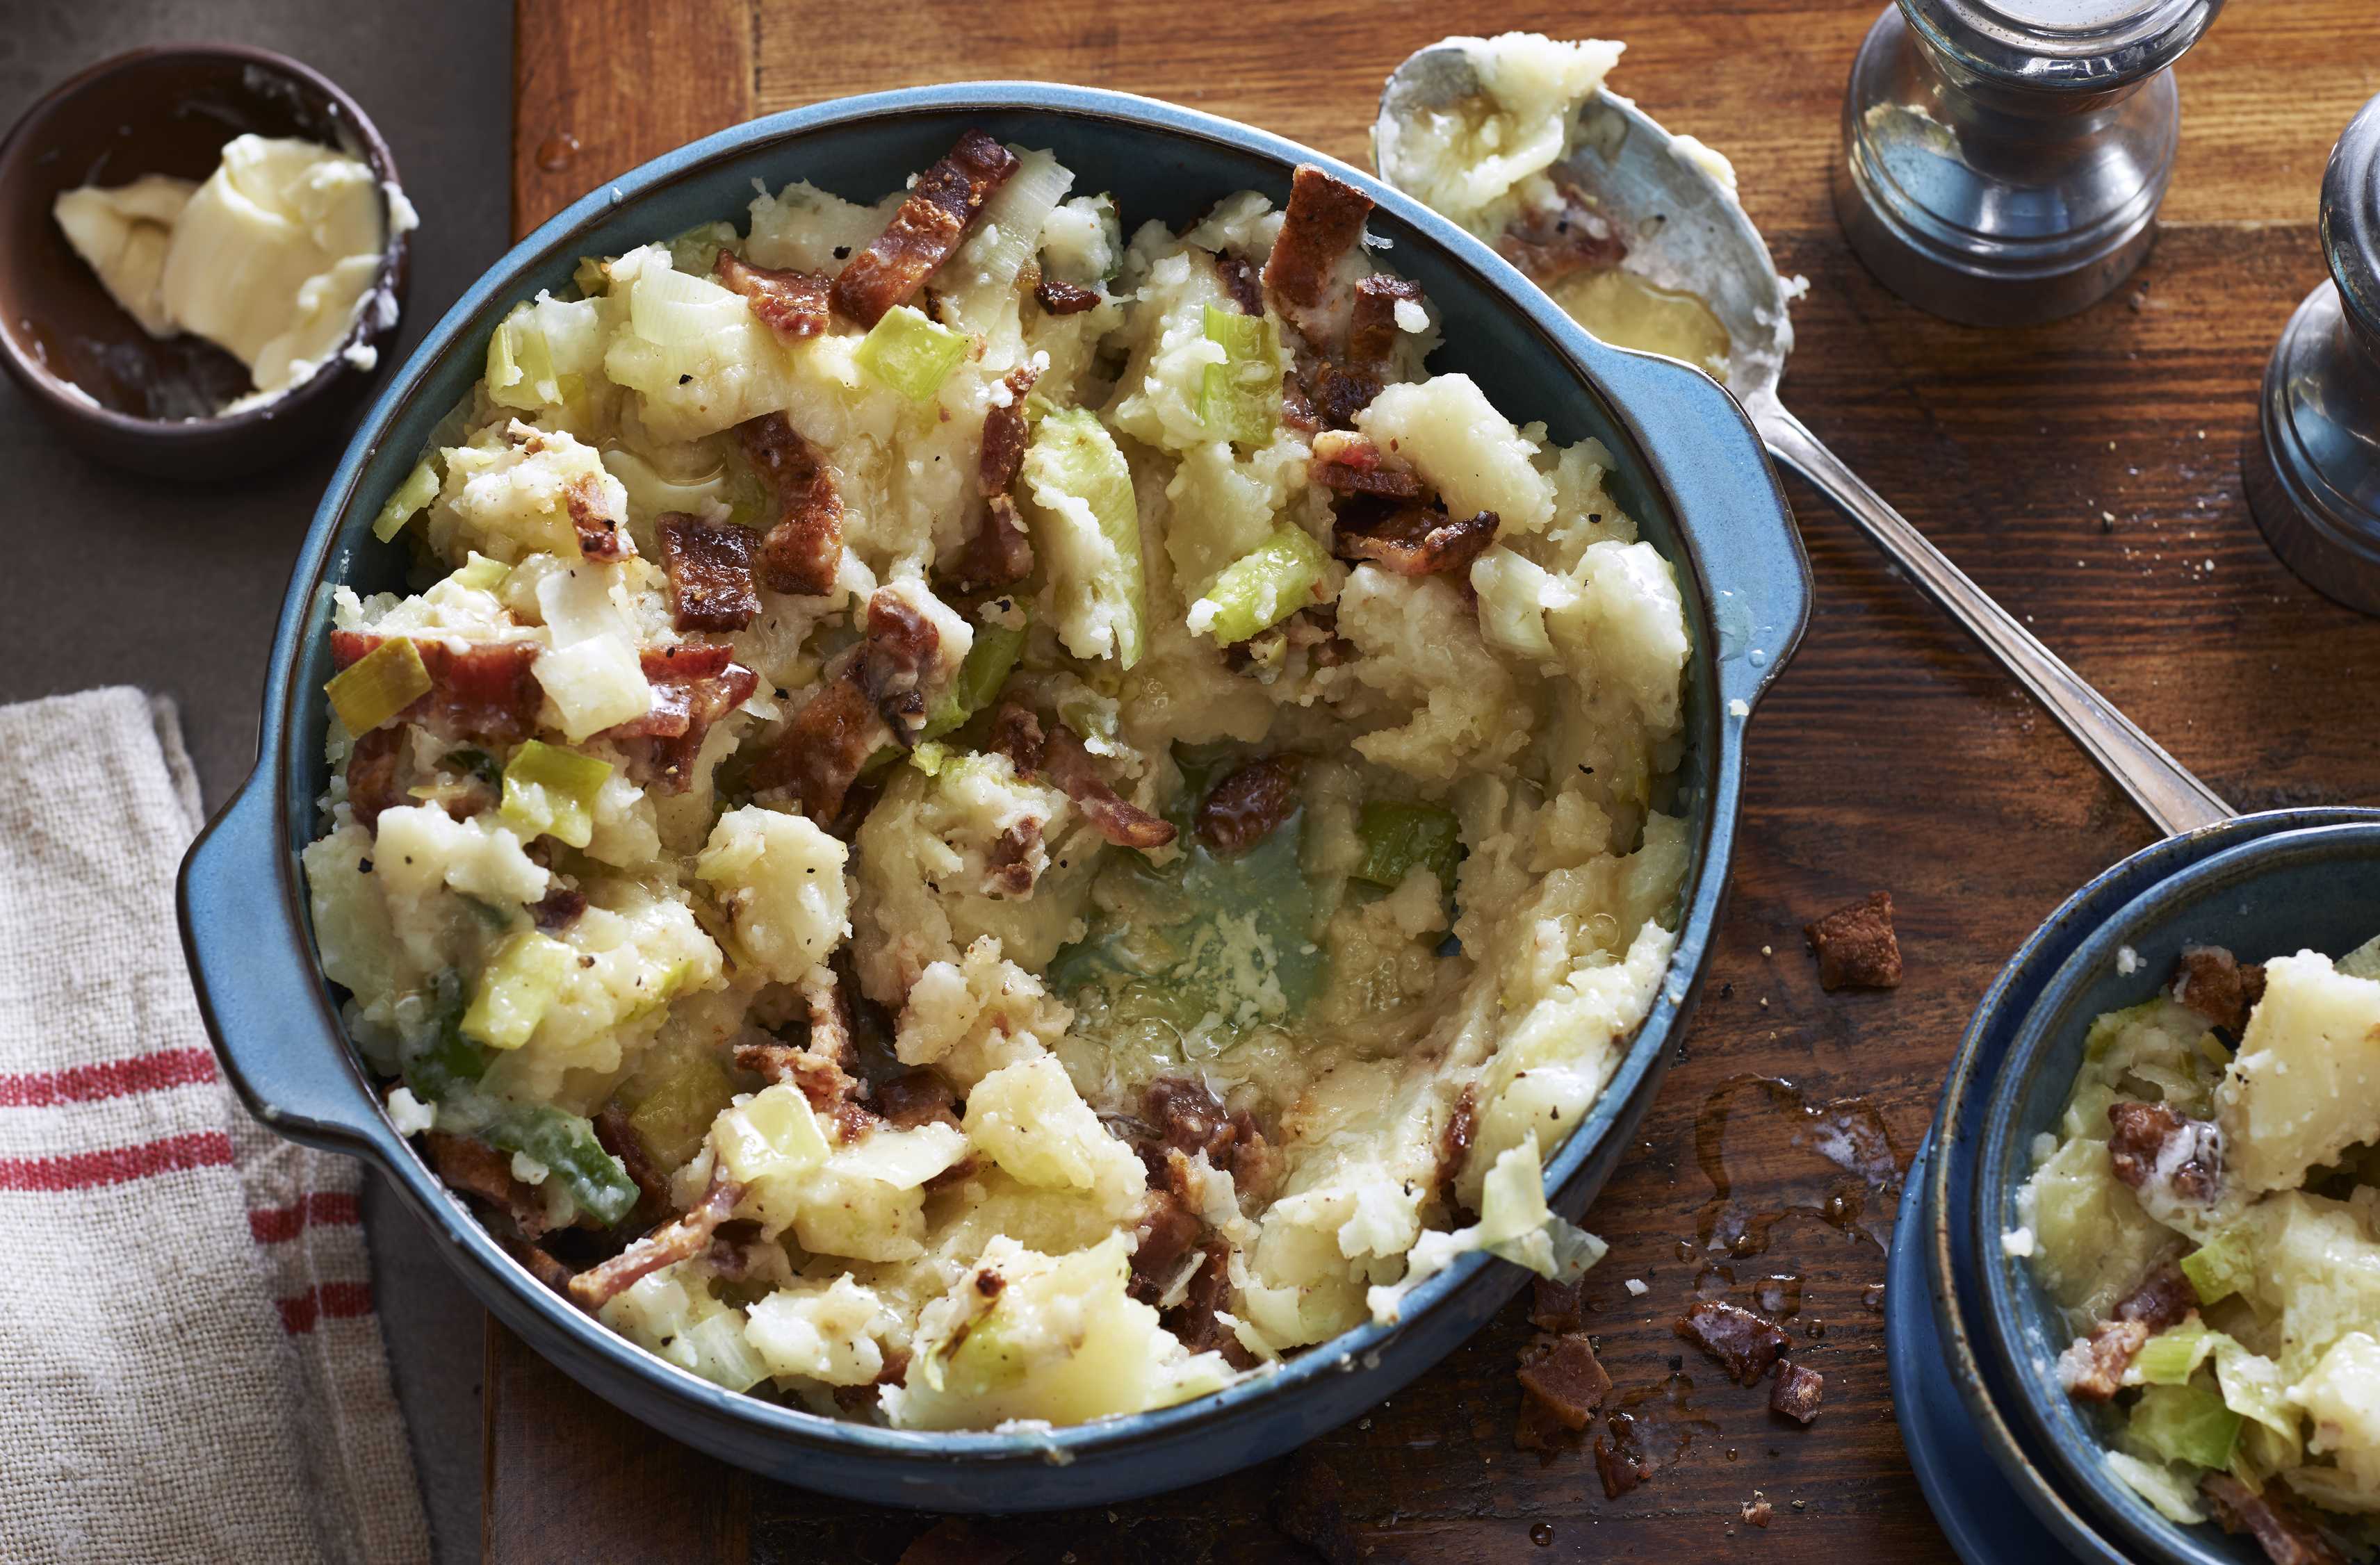 Mashed potatoes recipe mixed with leek and bacon.  Placed in a ceramic serving bowl.  Small butter dish on the side to place on top.